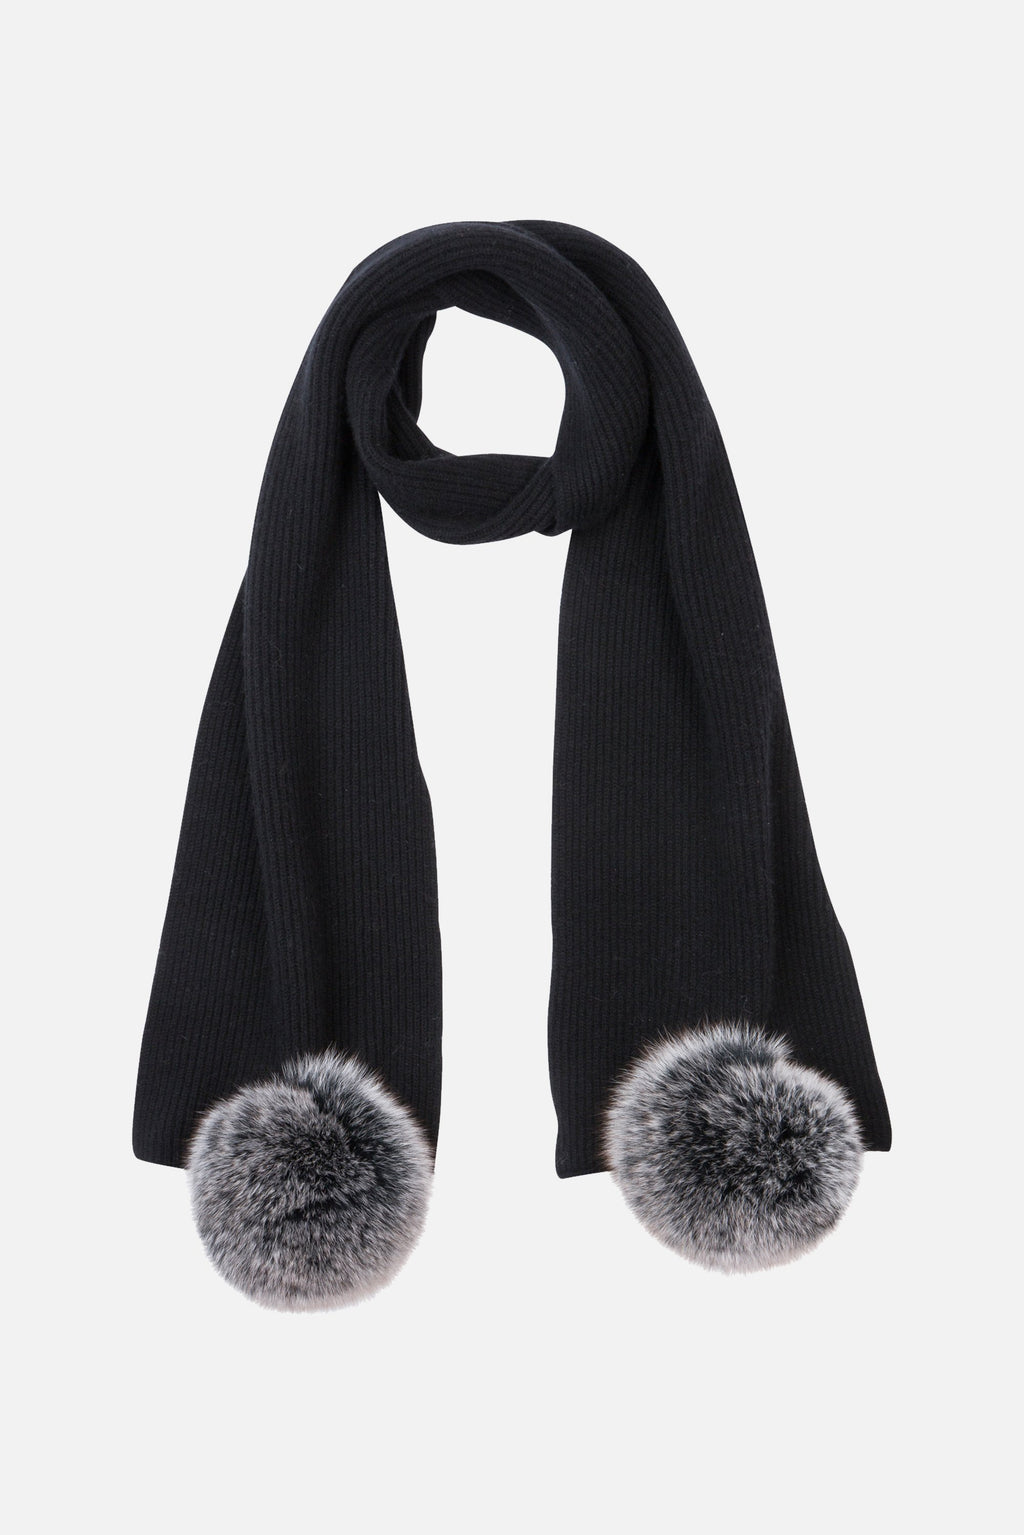 Max & Moi Black Ribbed Knit Scarf with Pompoms